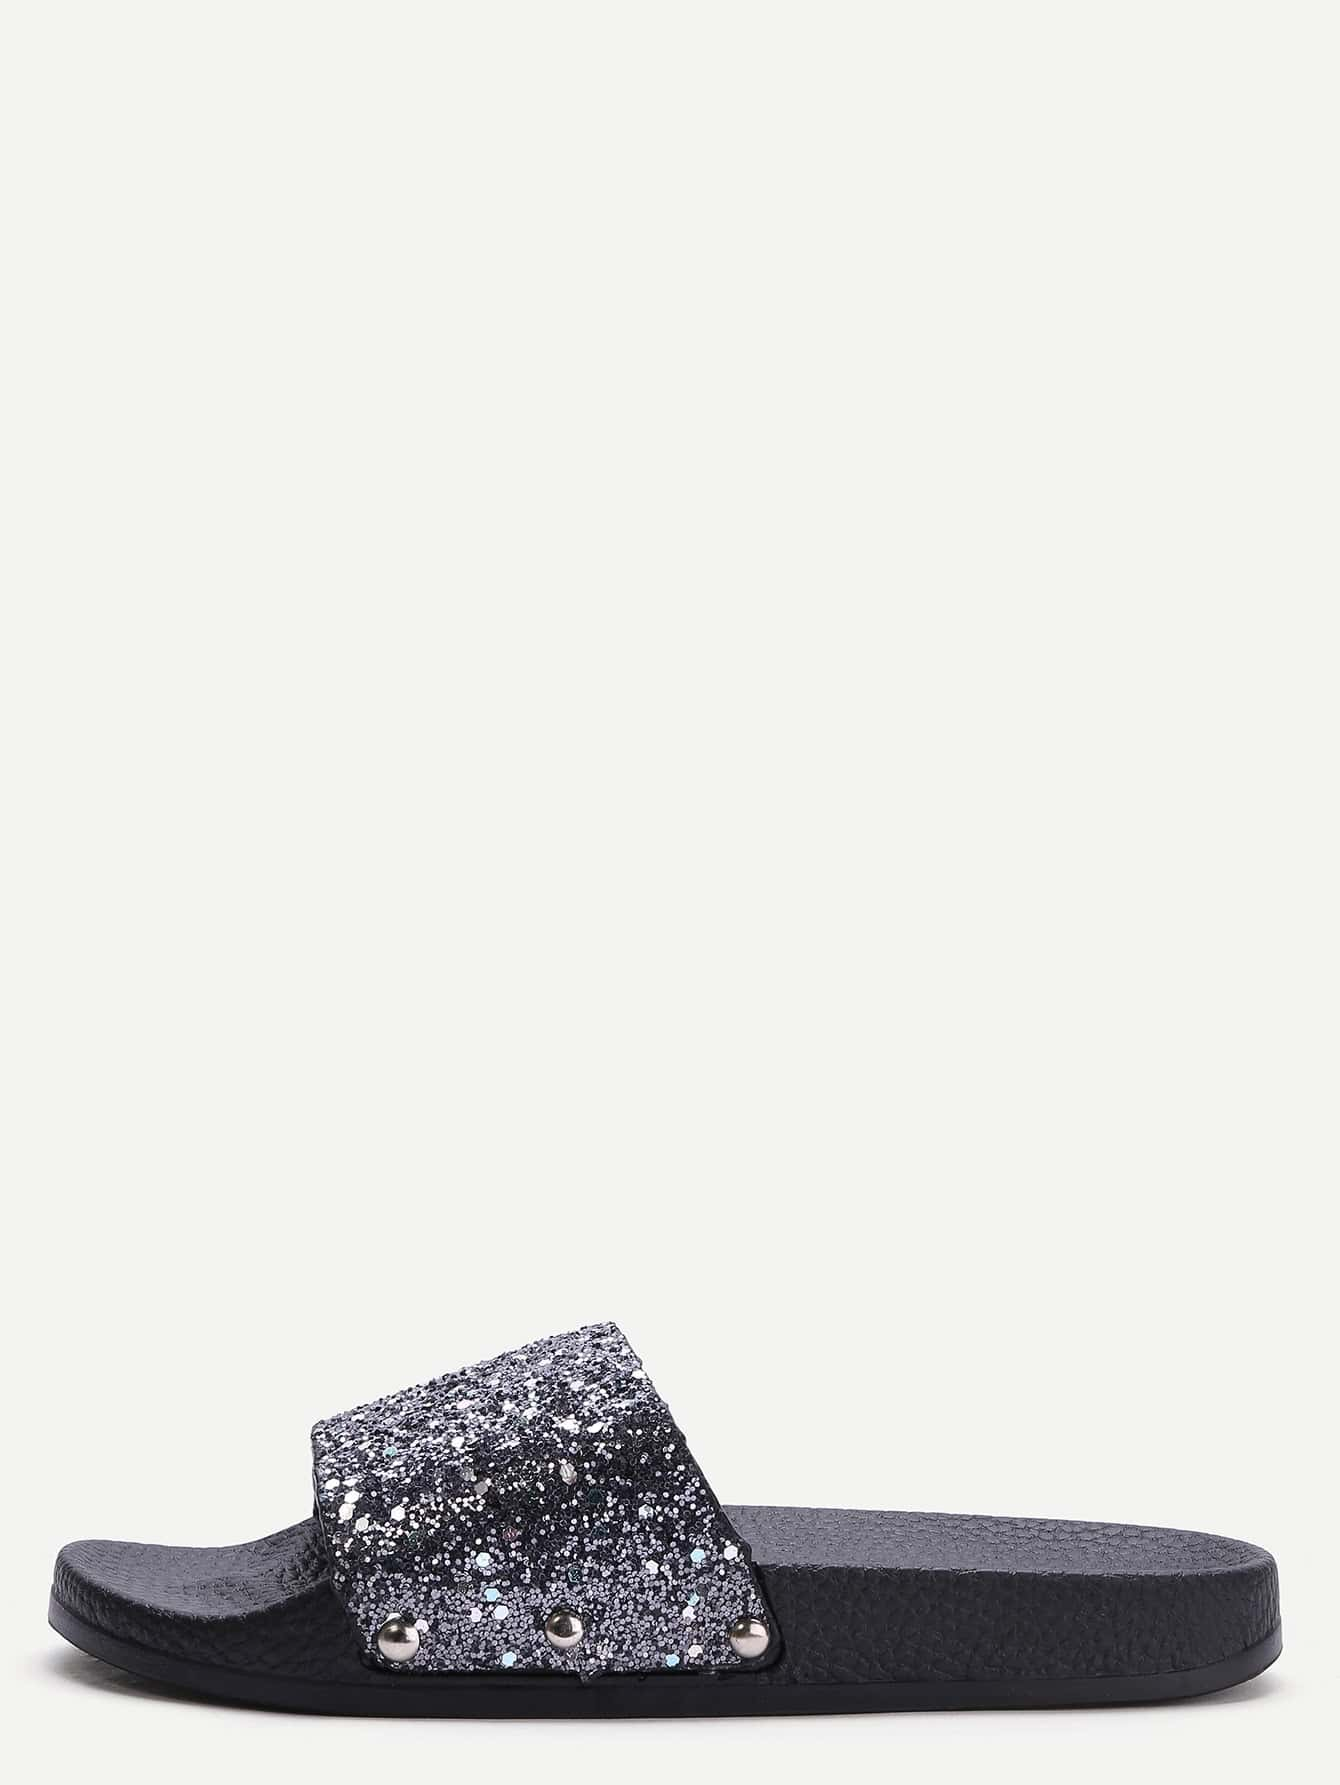 Black PU Rubber Peep Toe Glitter/Sparkle Casual Sandals.